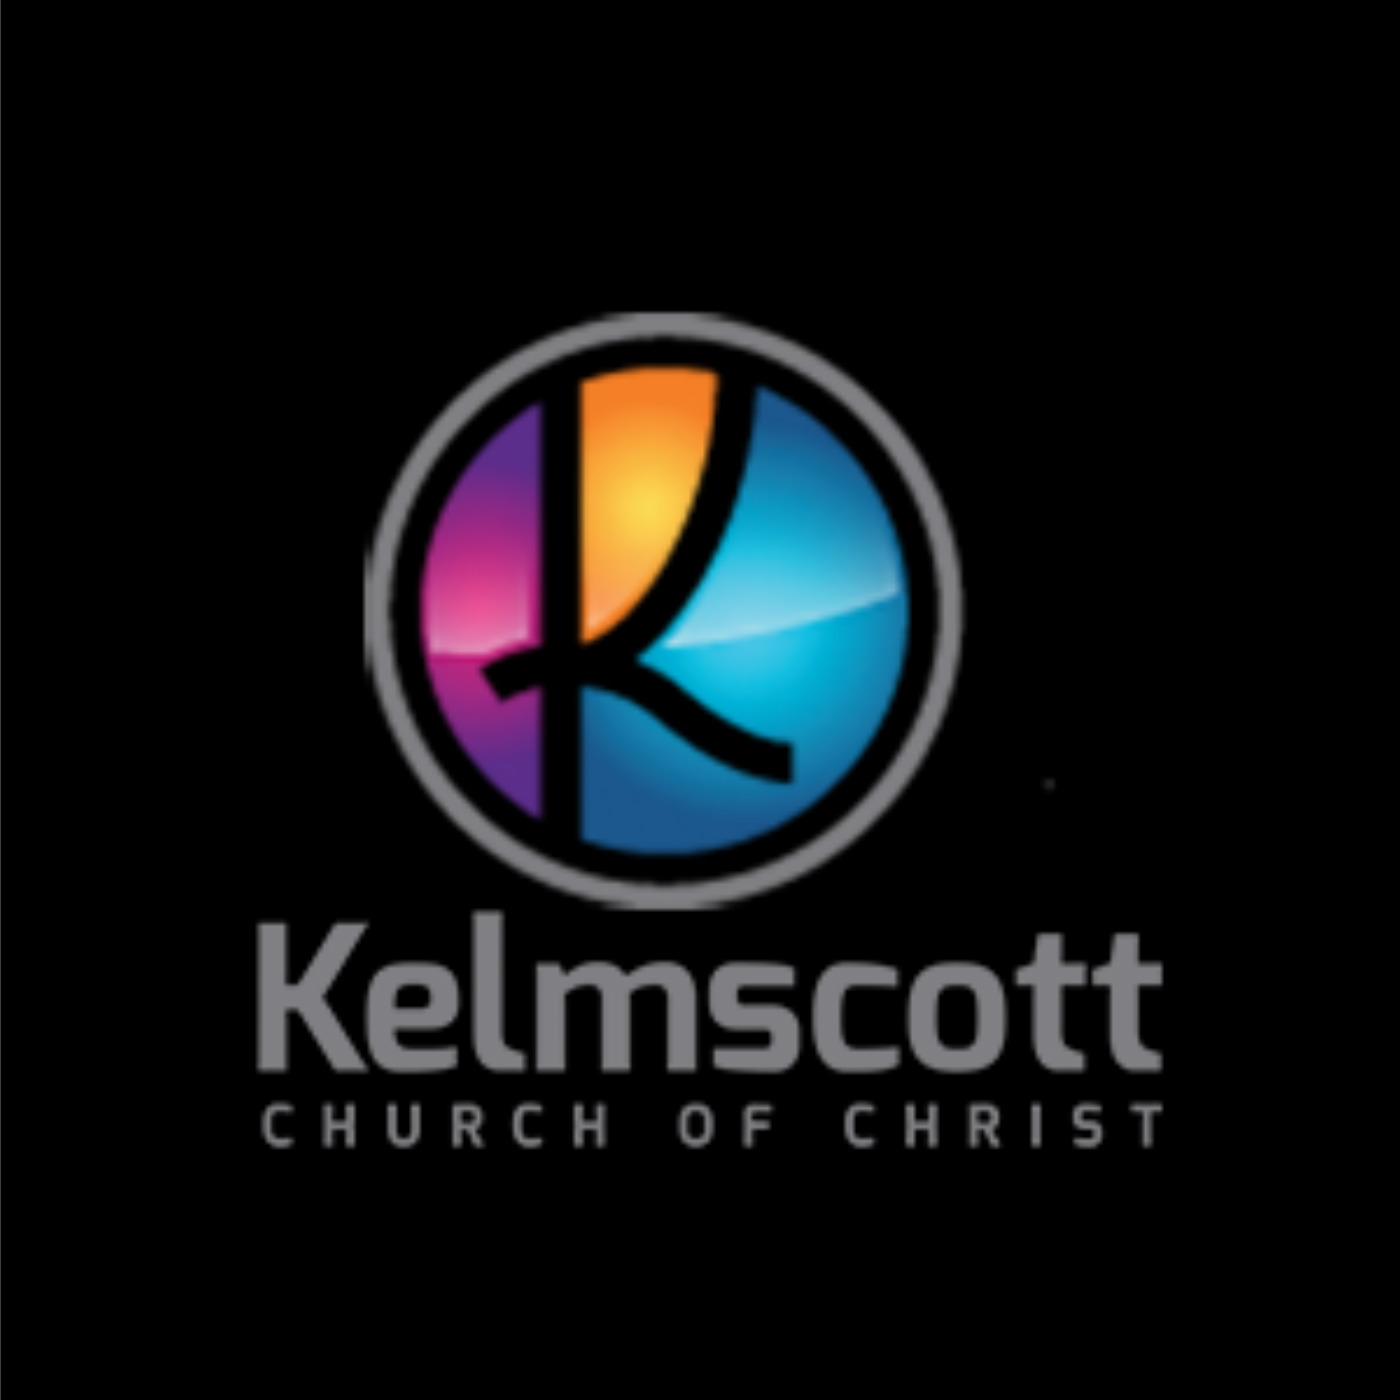 Kelmscott Church of Christ